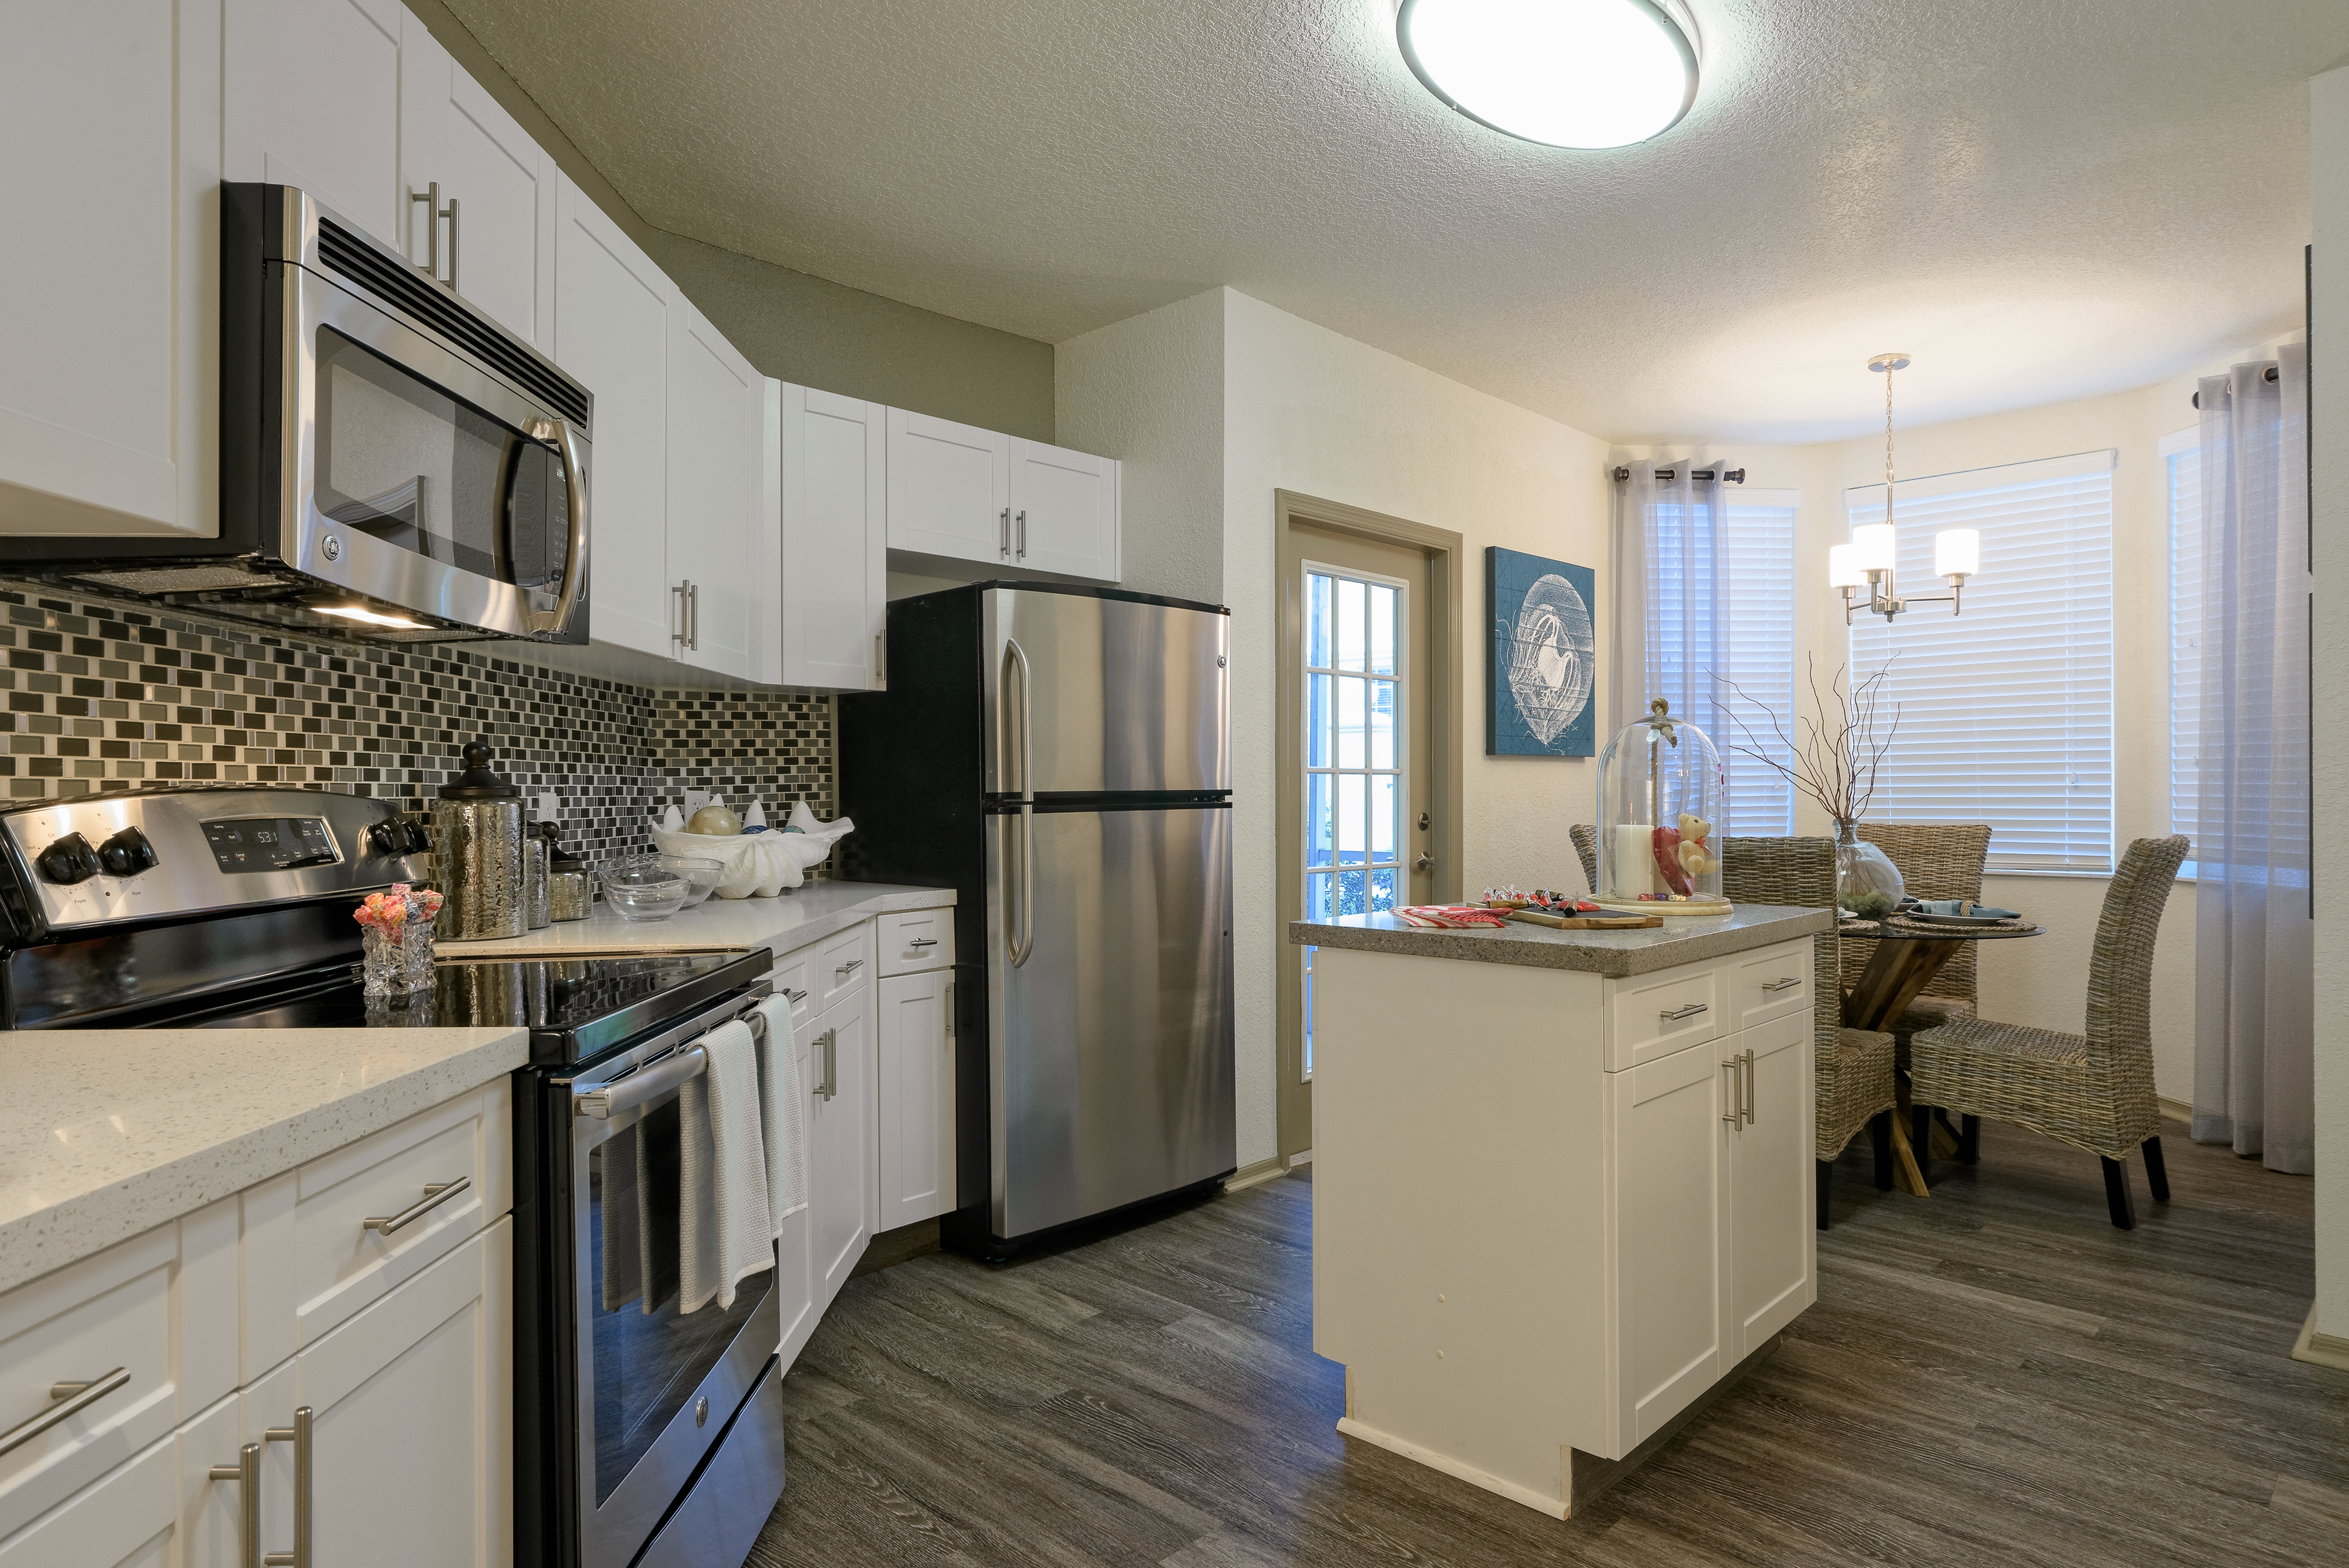 Apartment kitchen with wood like flooring, small island, tiled backsplash, stainless steel appliances, patio door and breakfast nook with windows